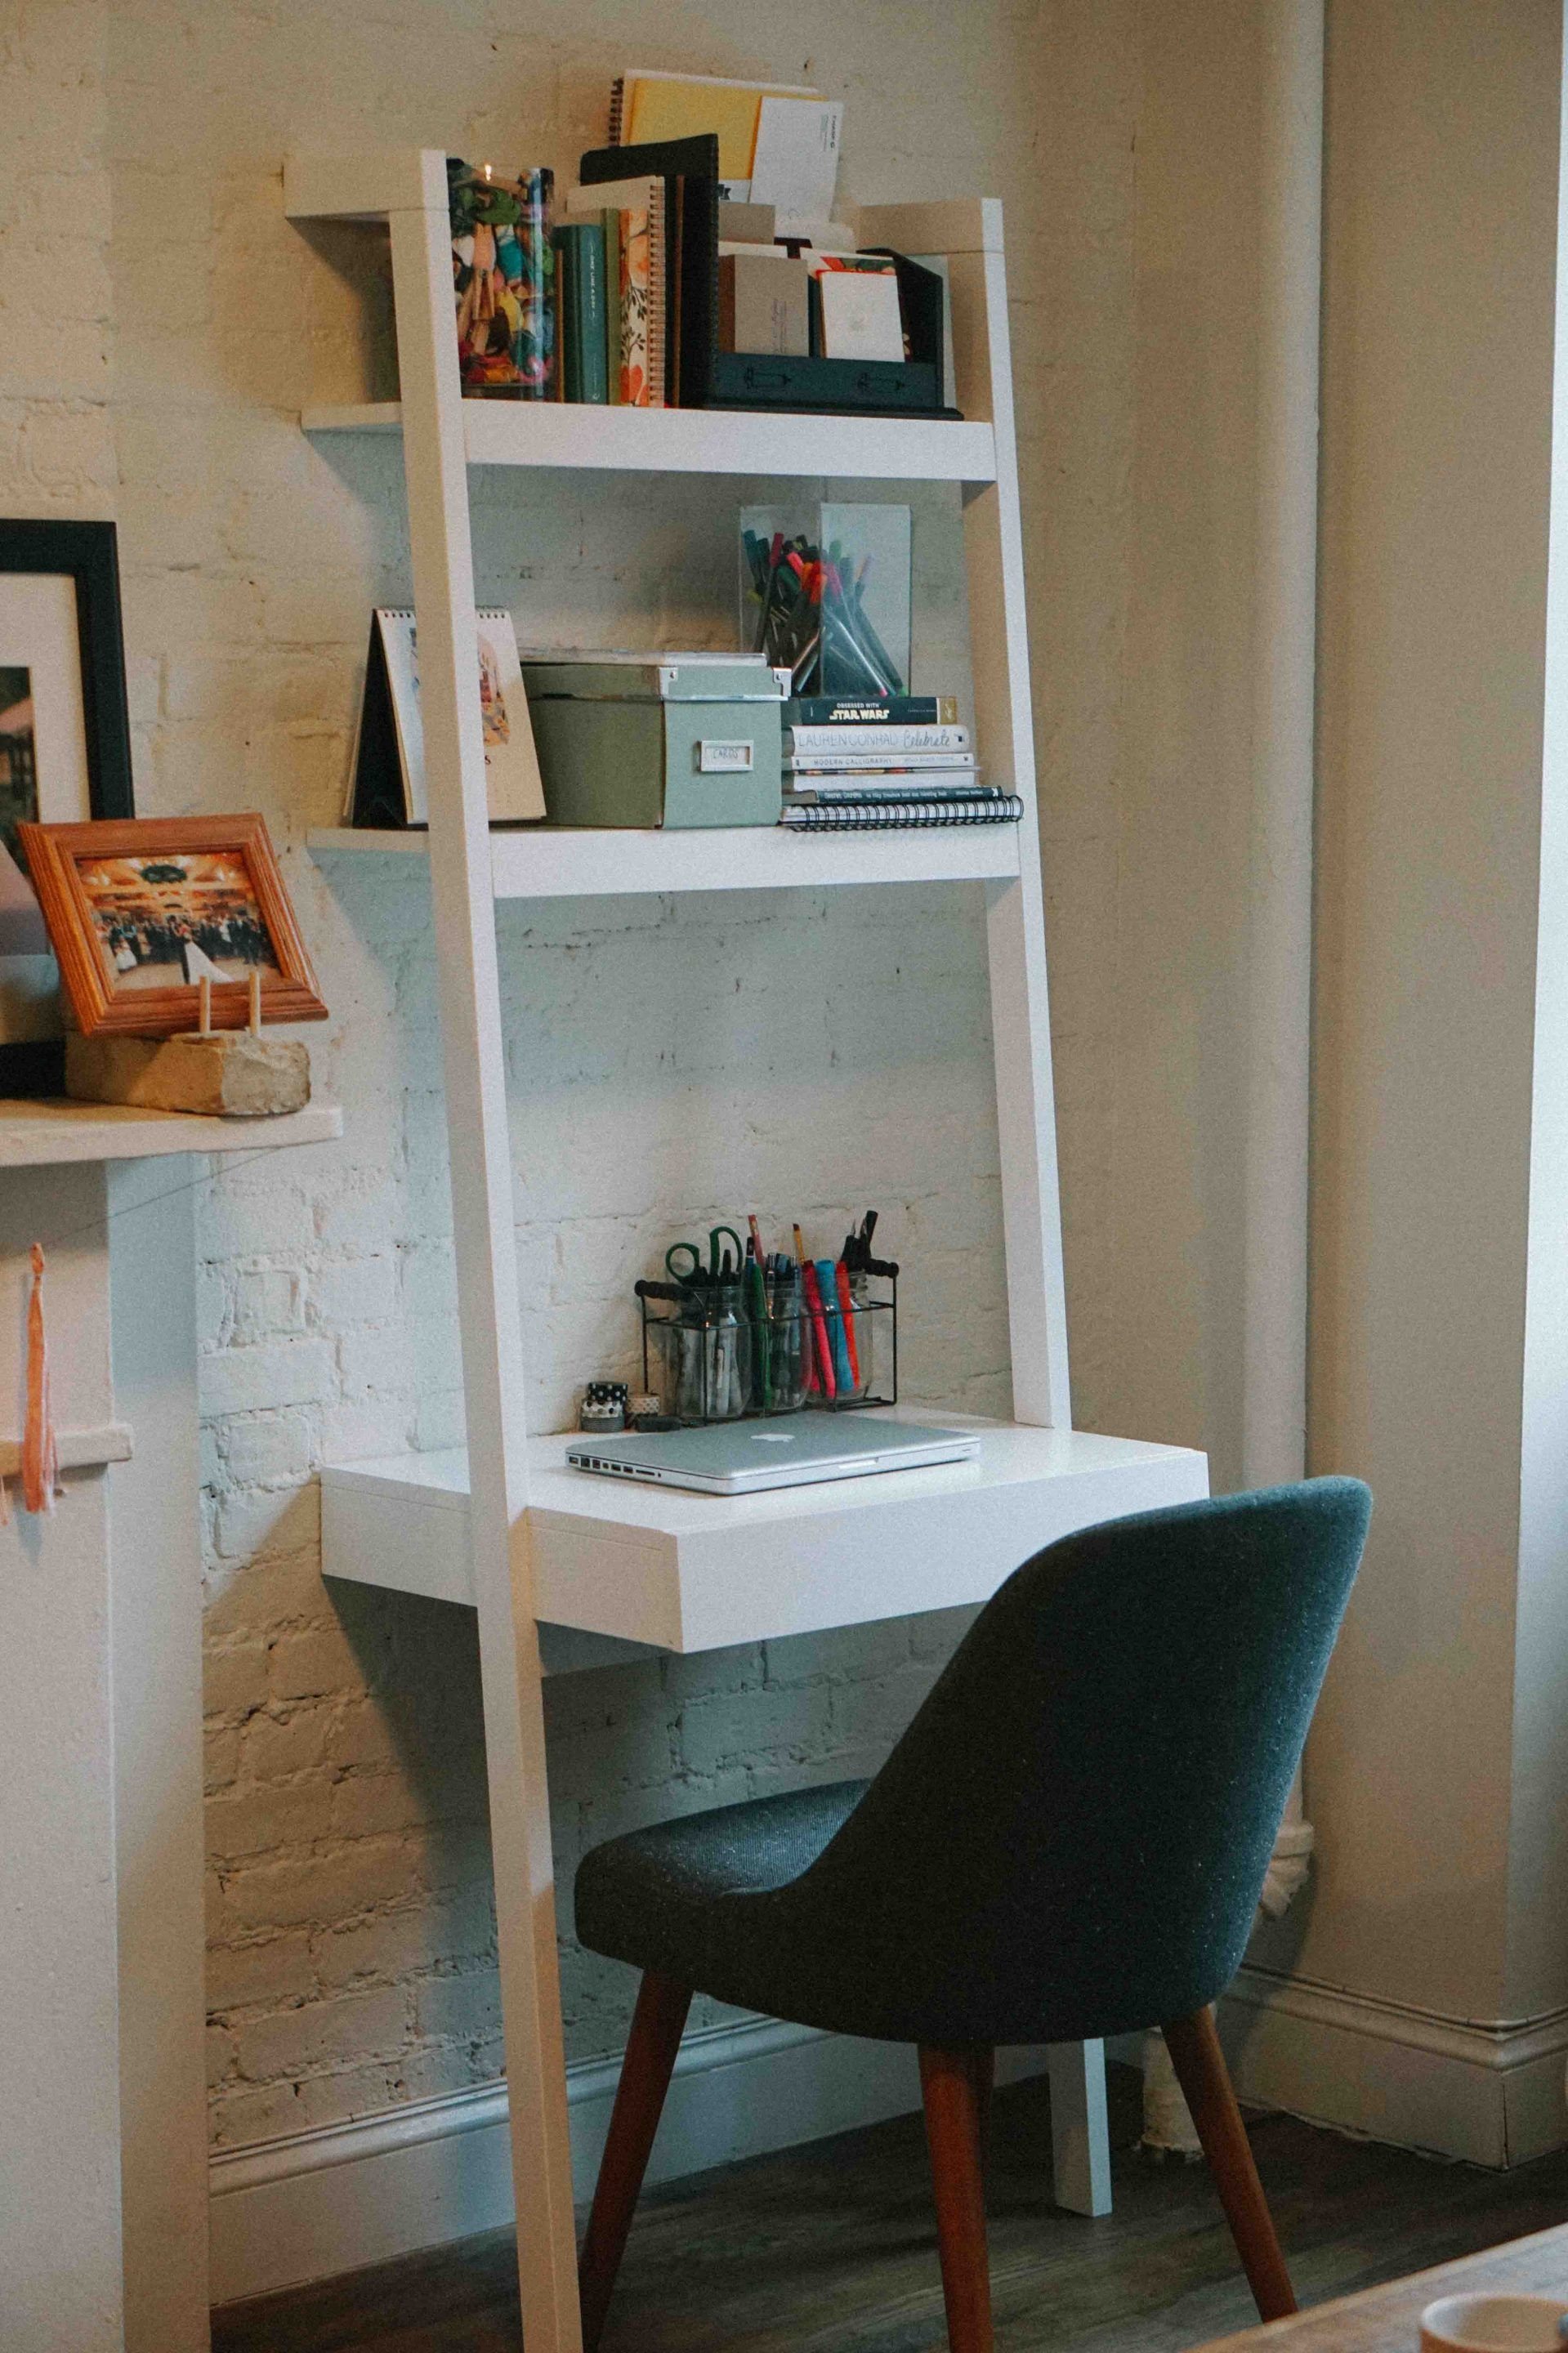 At Home Office In An Apartment Kayla S Five Things